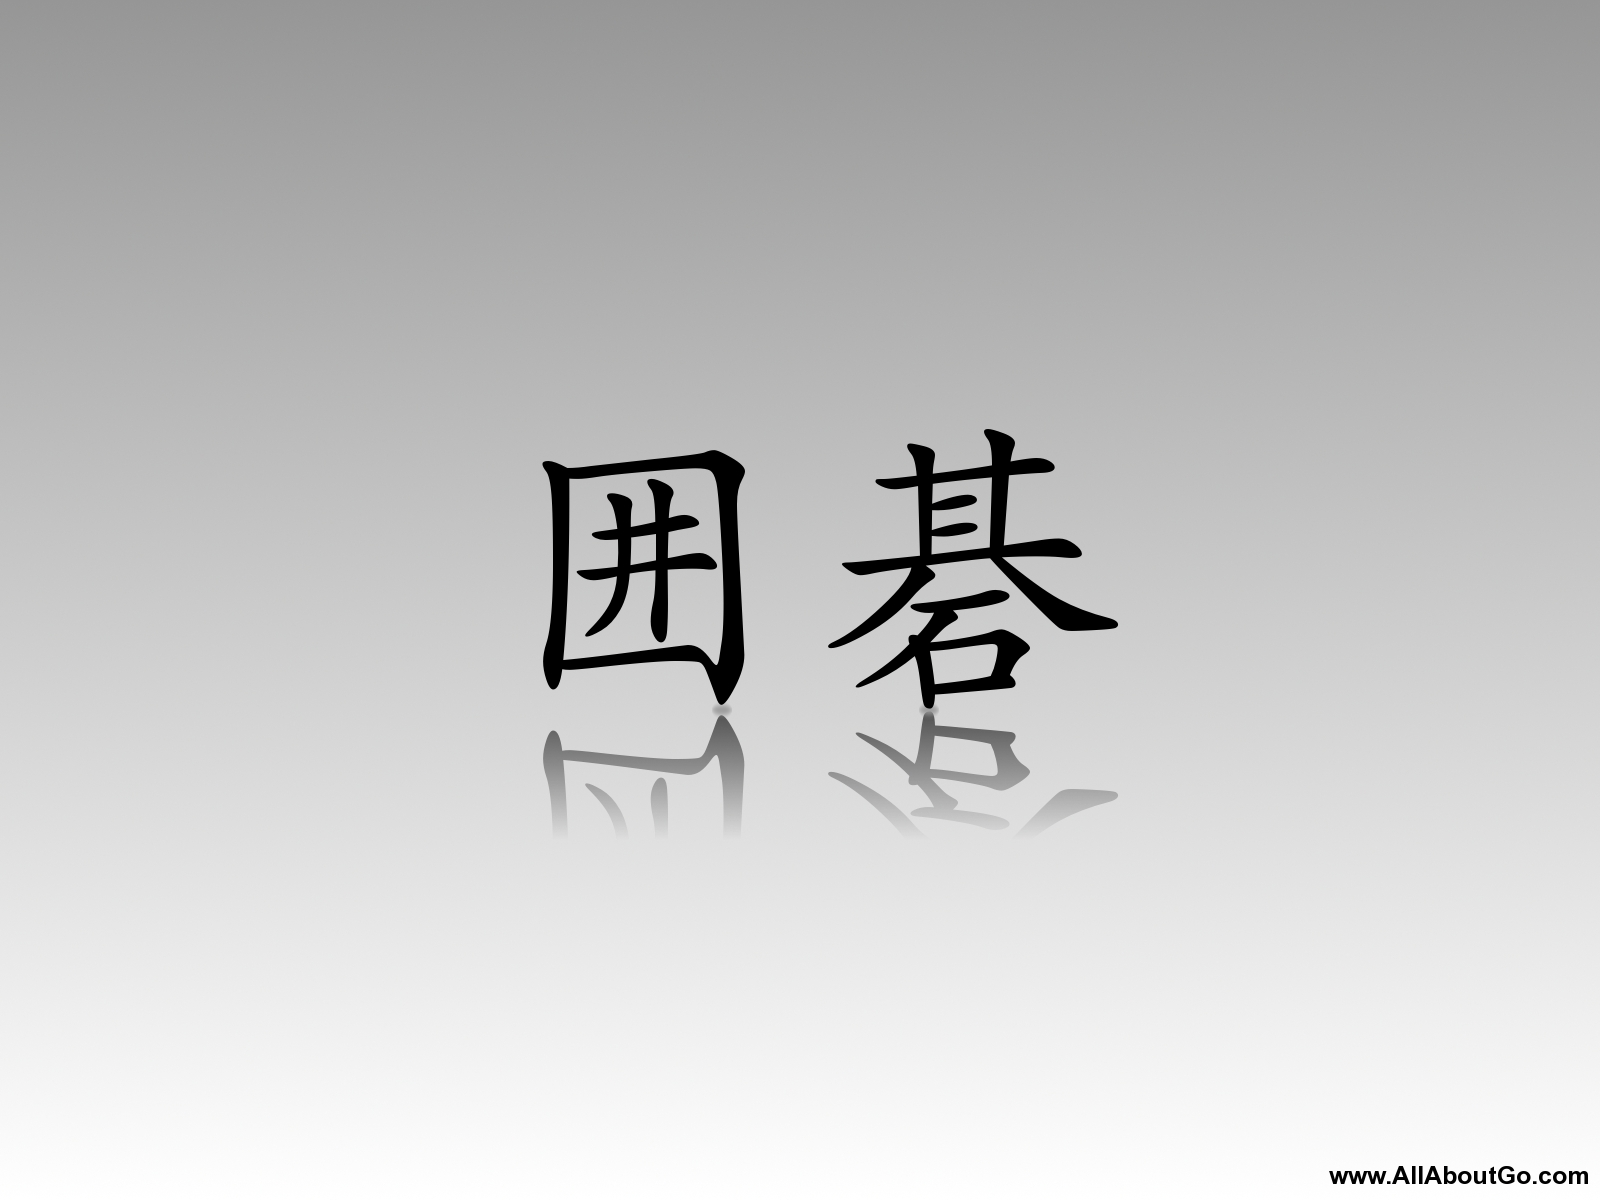 Japanese Mirrored Kanji Wallpaper Design With A Mirror Effect